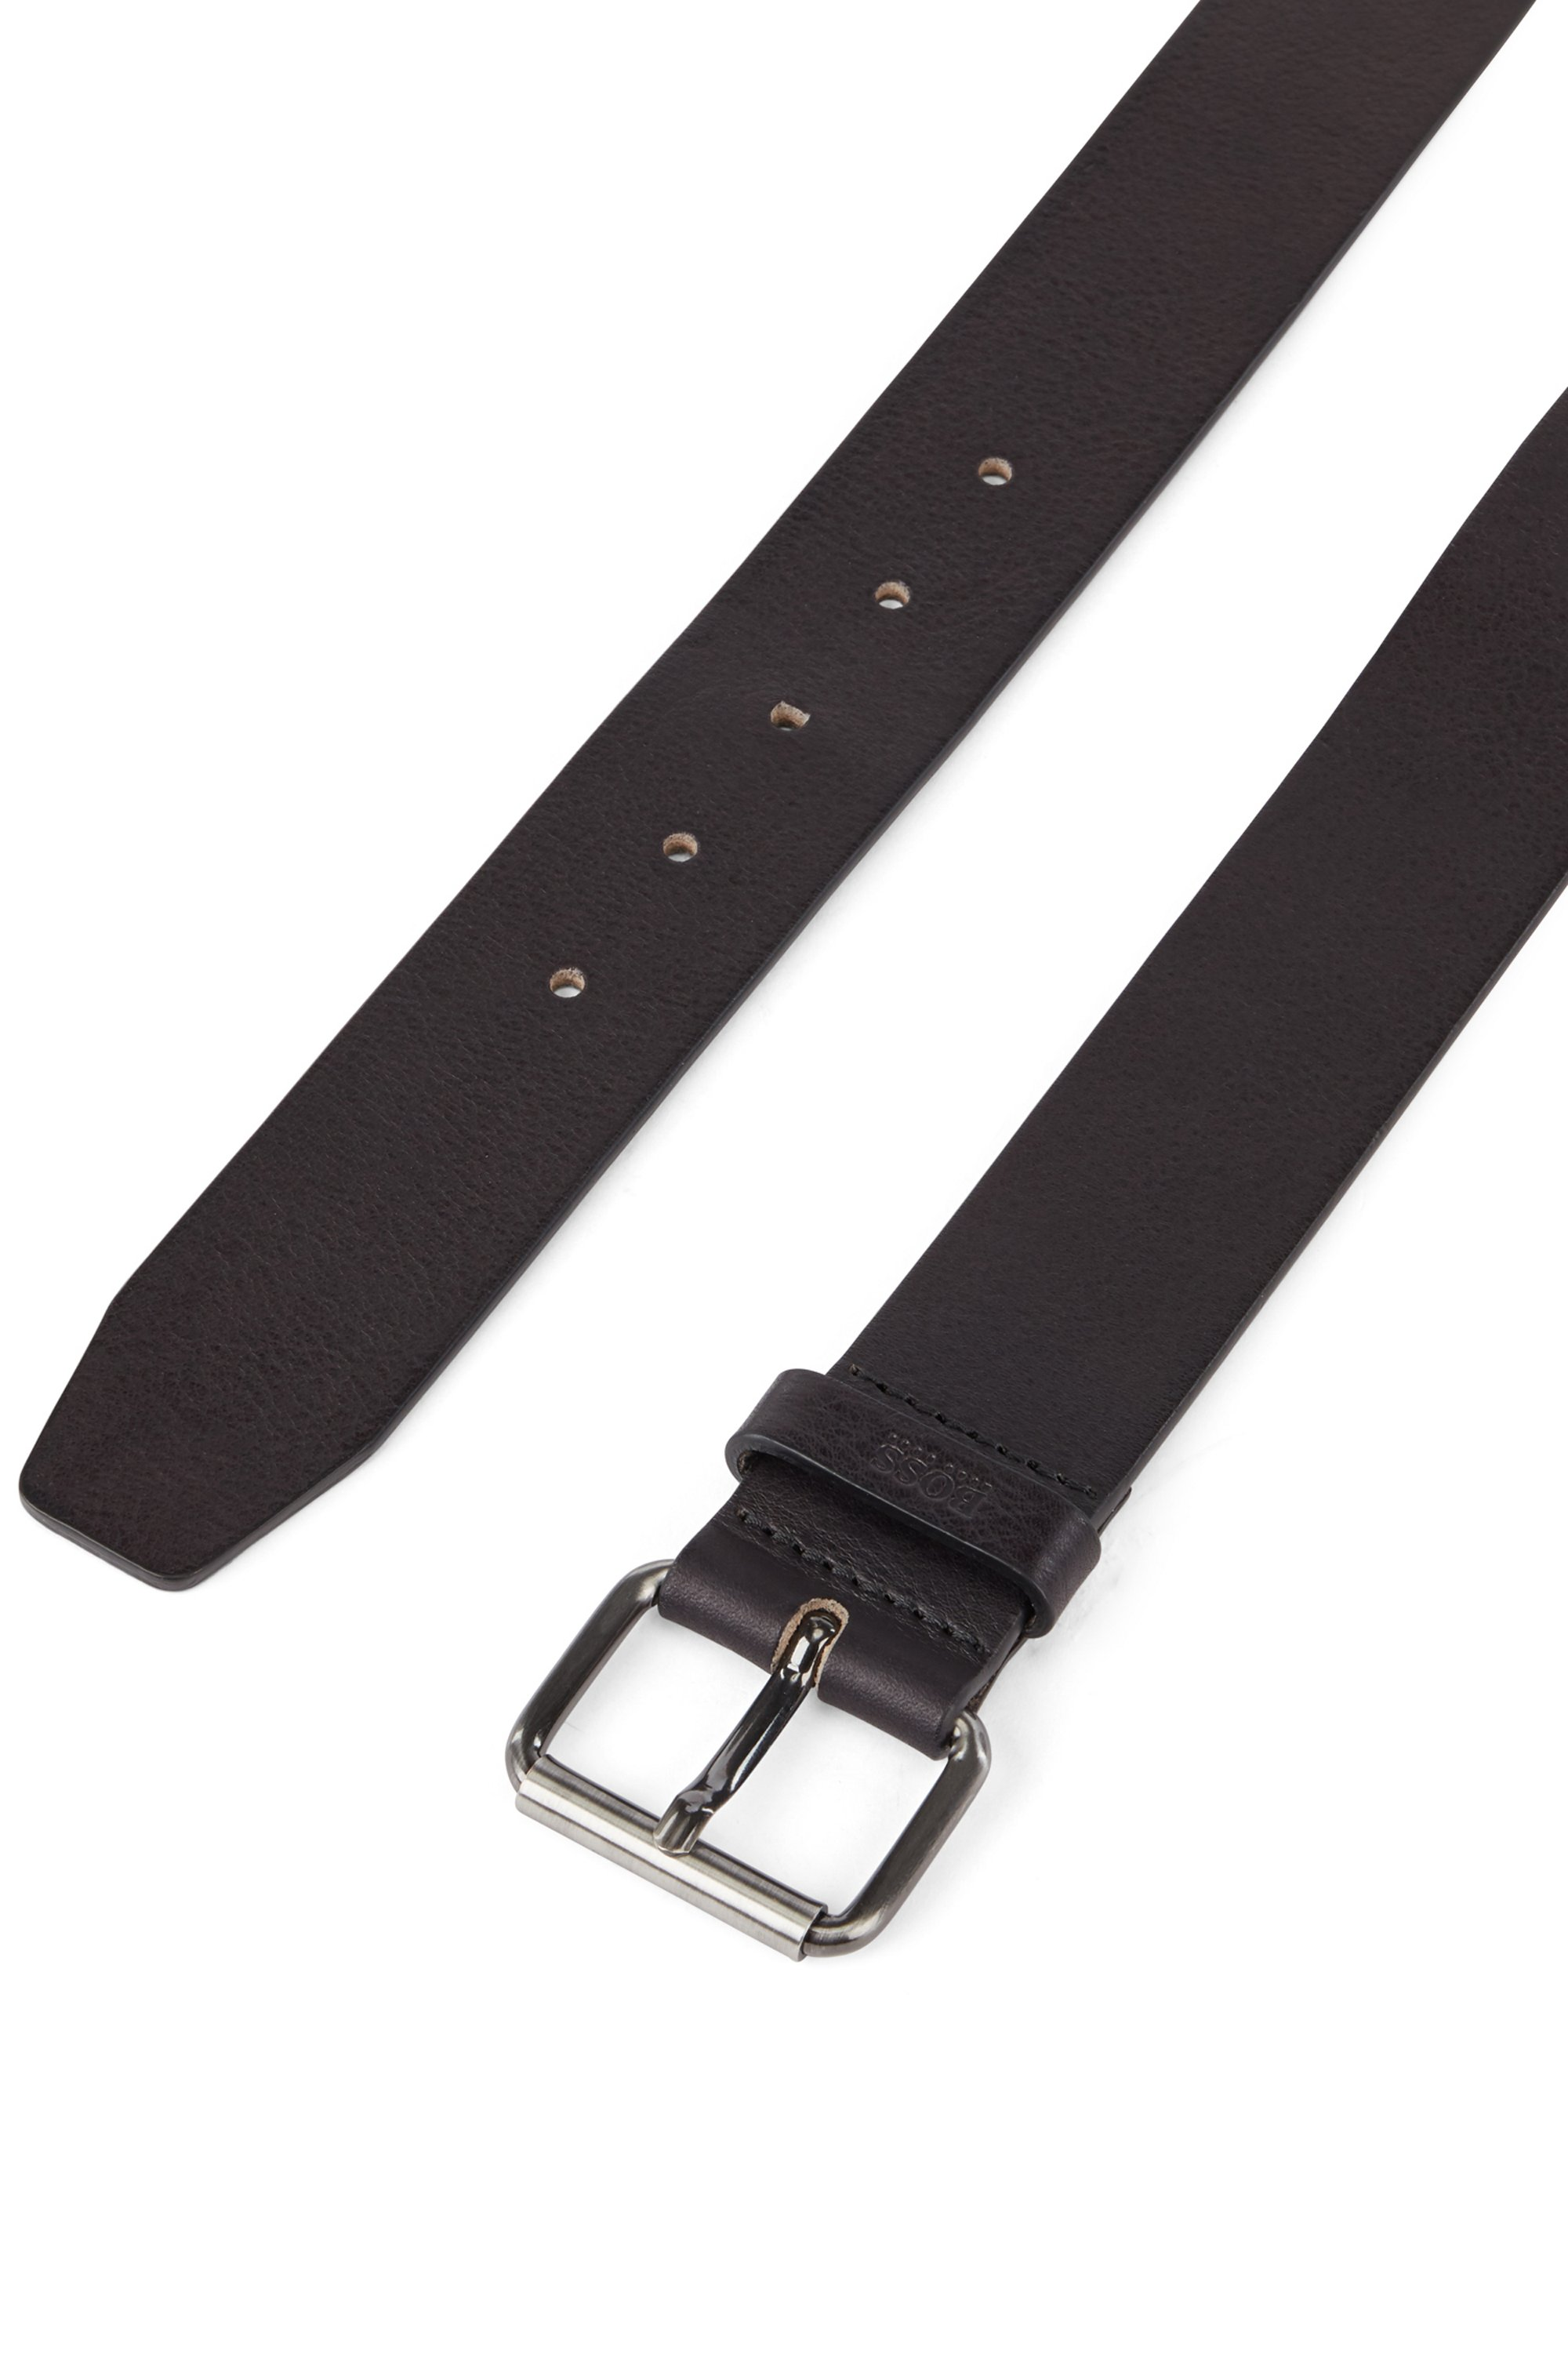 Tanned-leather belt with gunmetal roller buckle